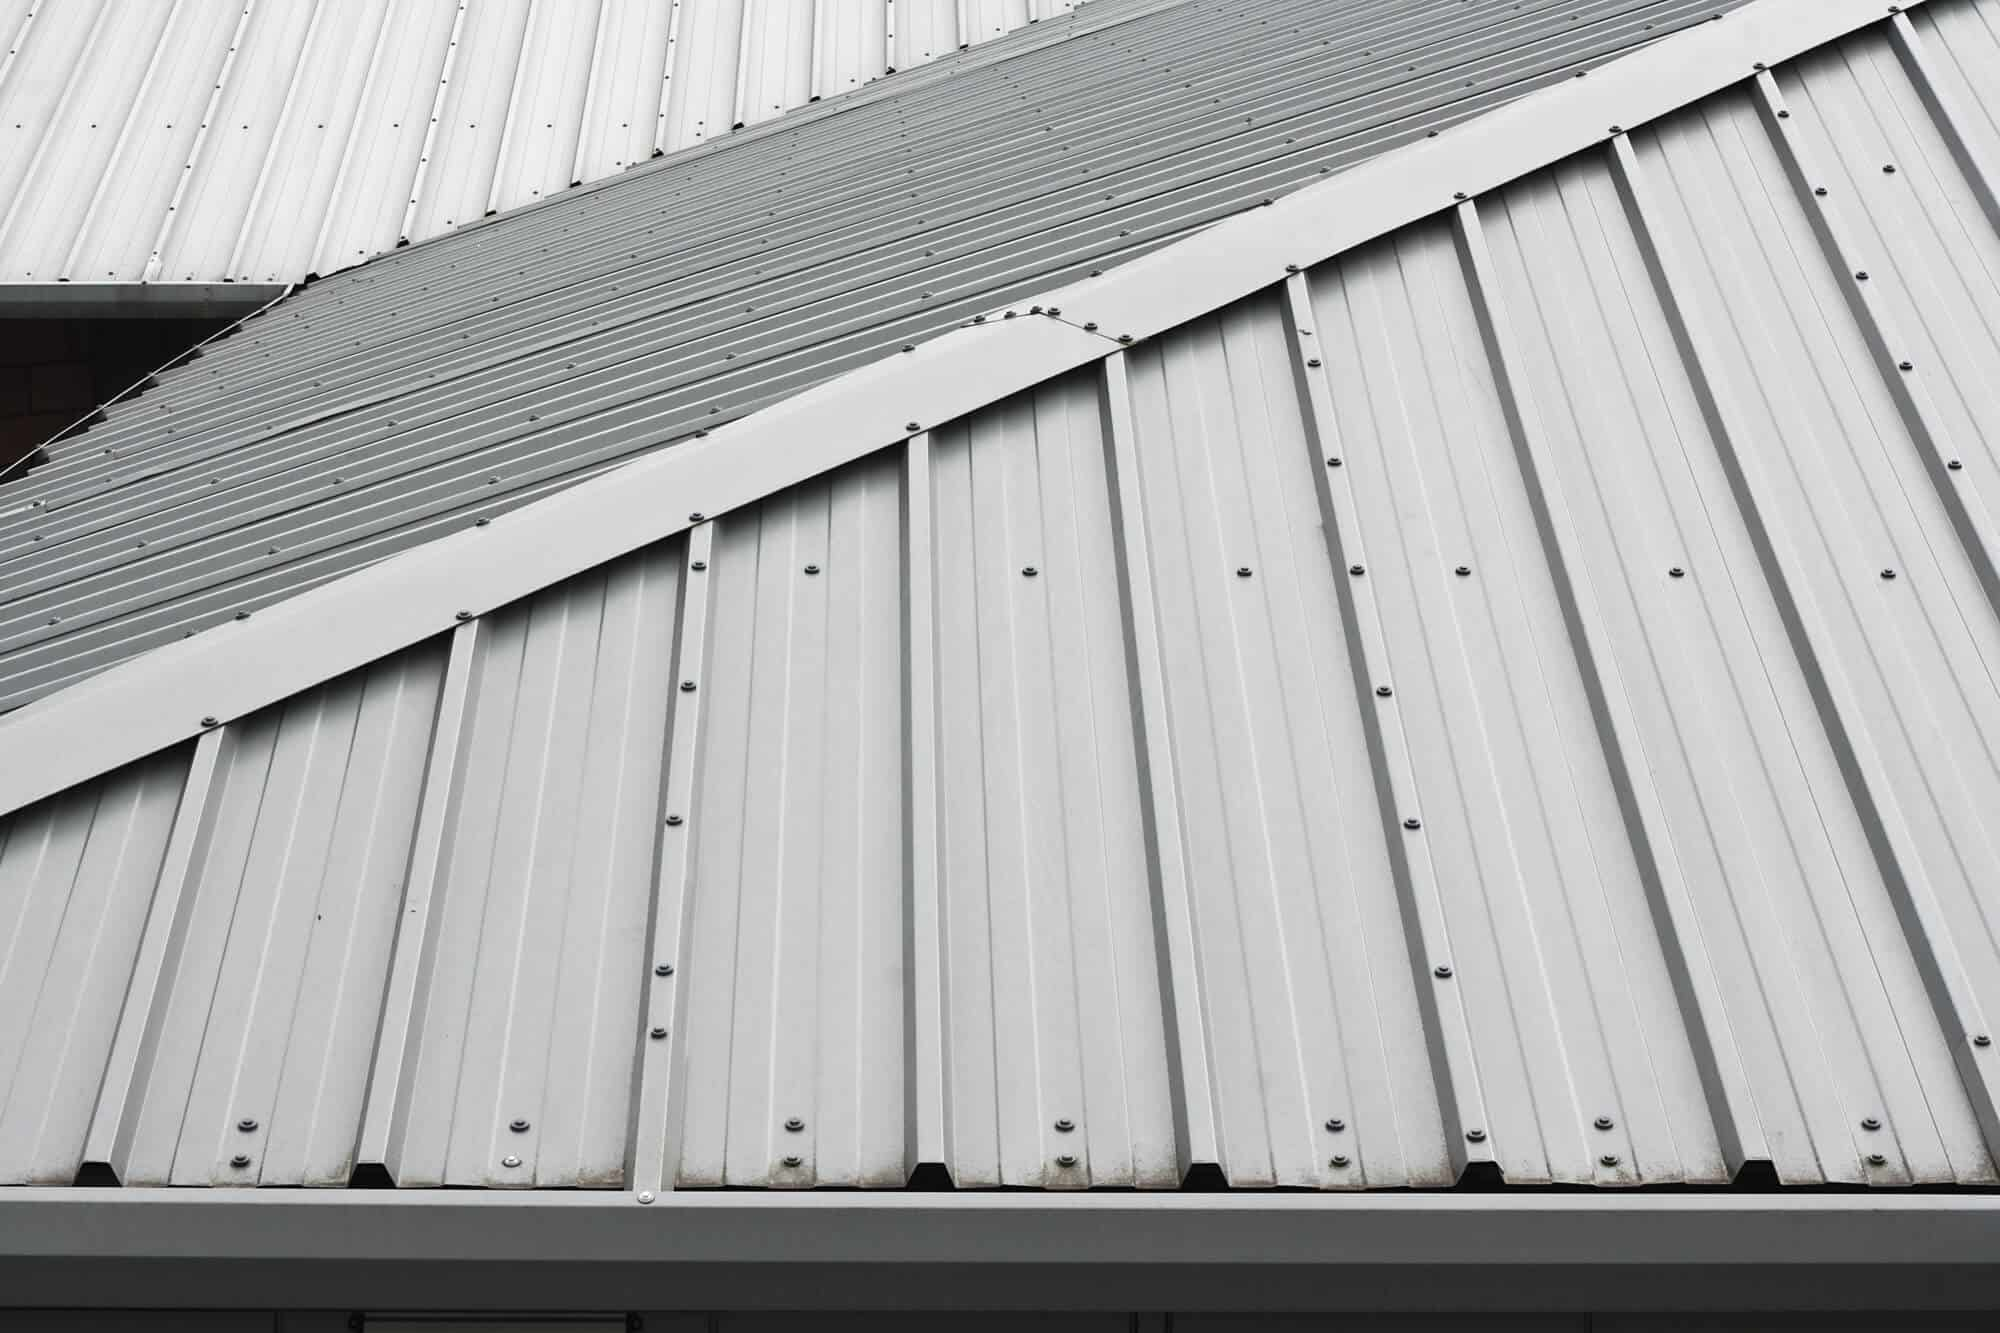 The Best Five Types Of Metal Roofing Materials For Your New Roof All Seasons